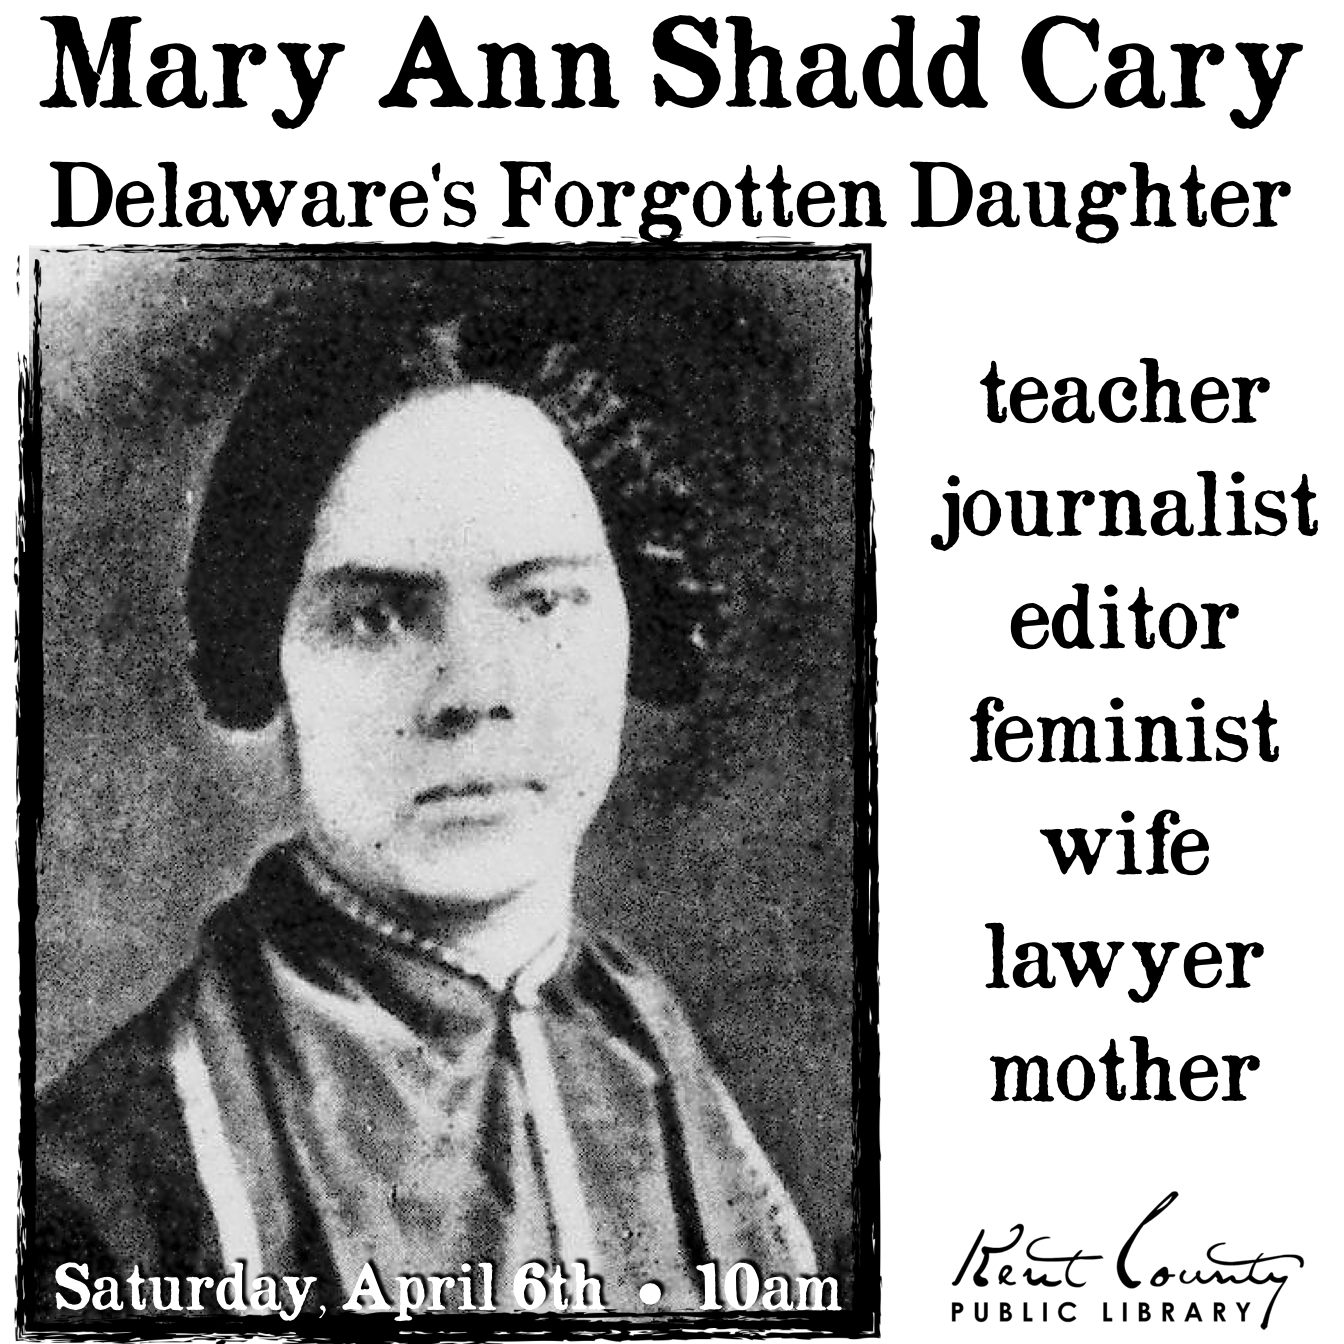 Mary Ann Shadd Cary: Delaware's Forgotten Daughter